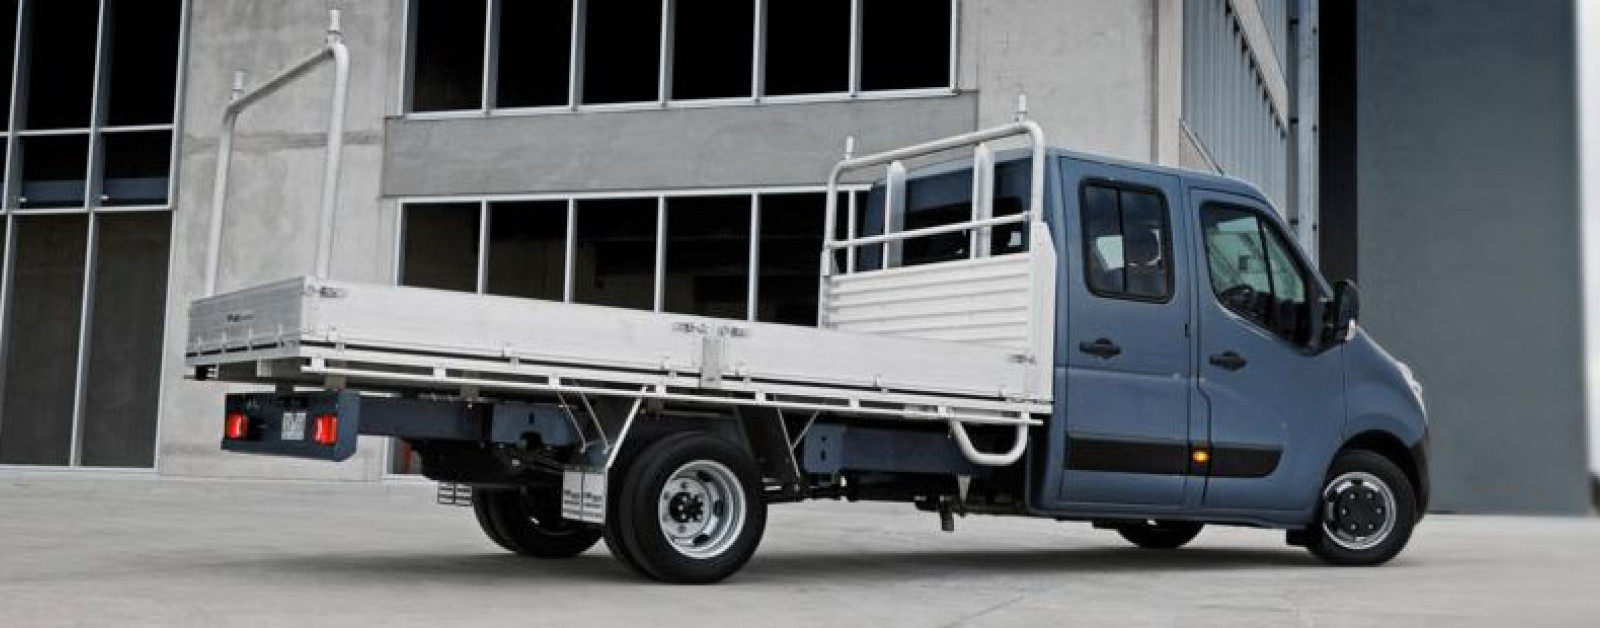 Master Cab Chassis